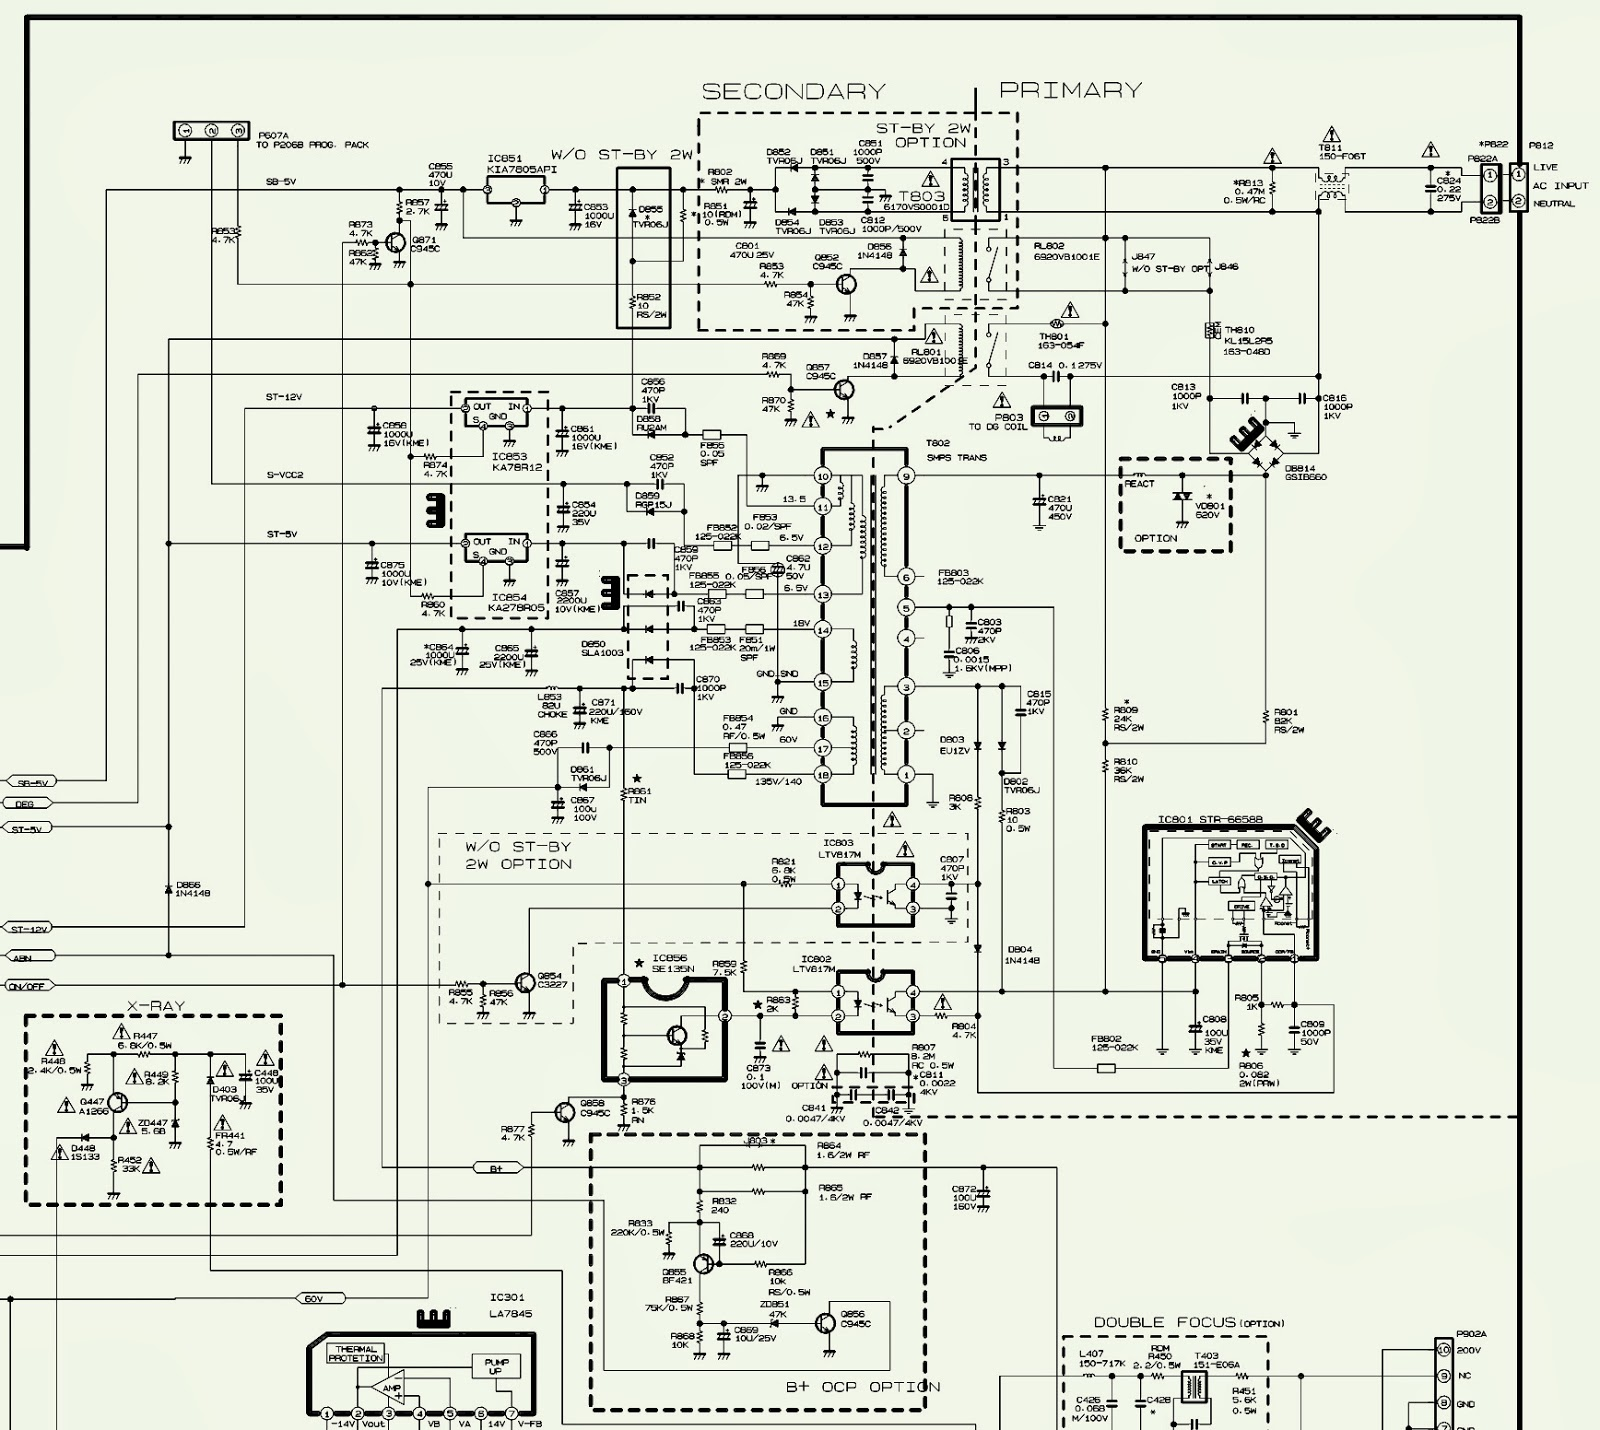 wiring diagram lg tv wiring diagrams microwave components diagram lg tv connection diagram wiring diagram todays [ 1600 x 1430 Pixel ]